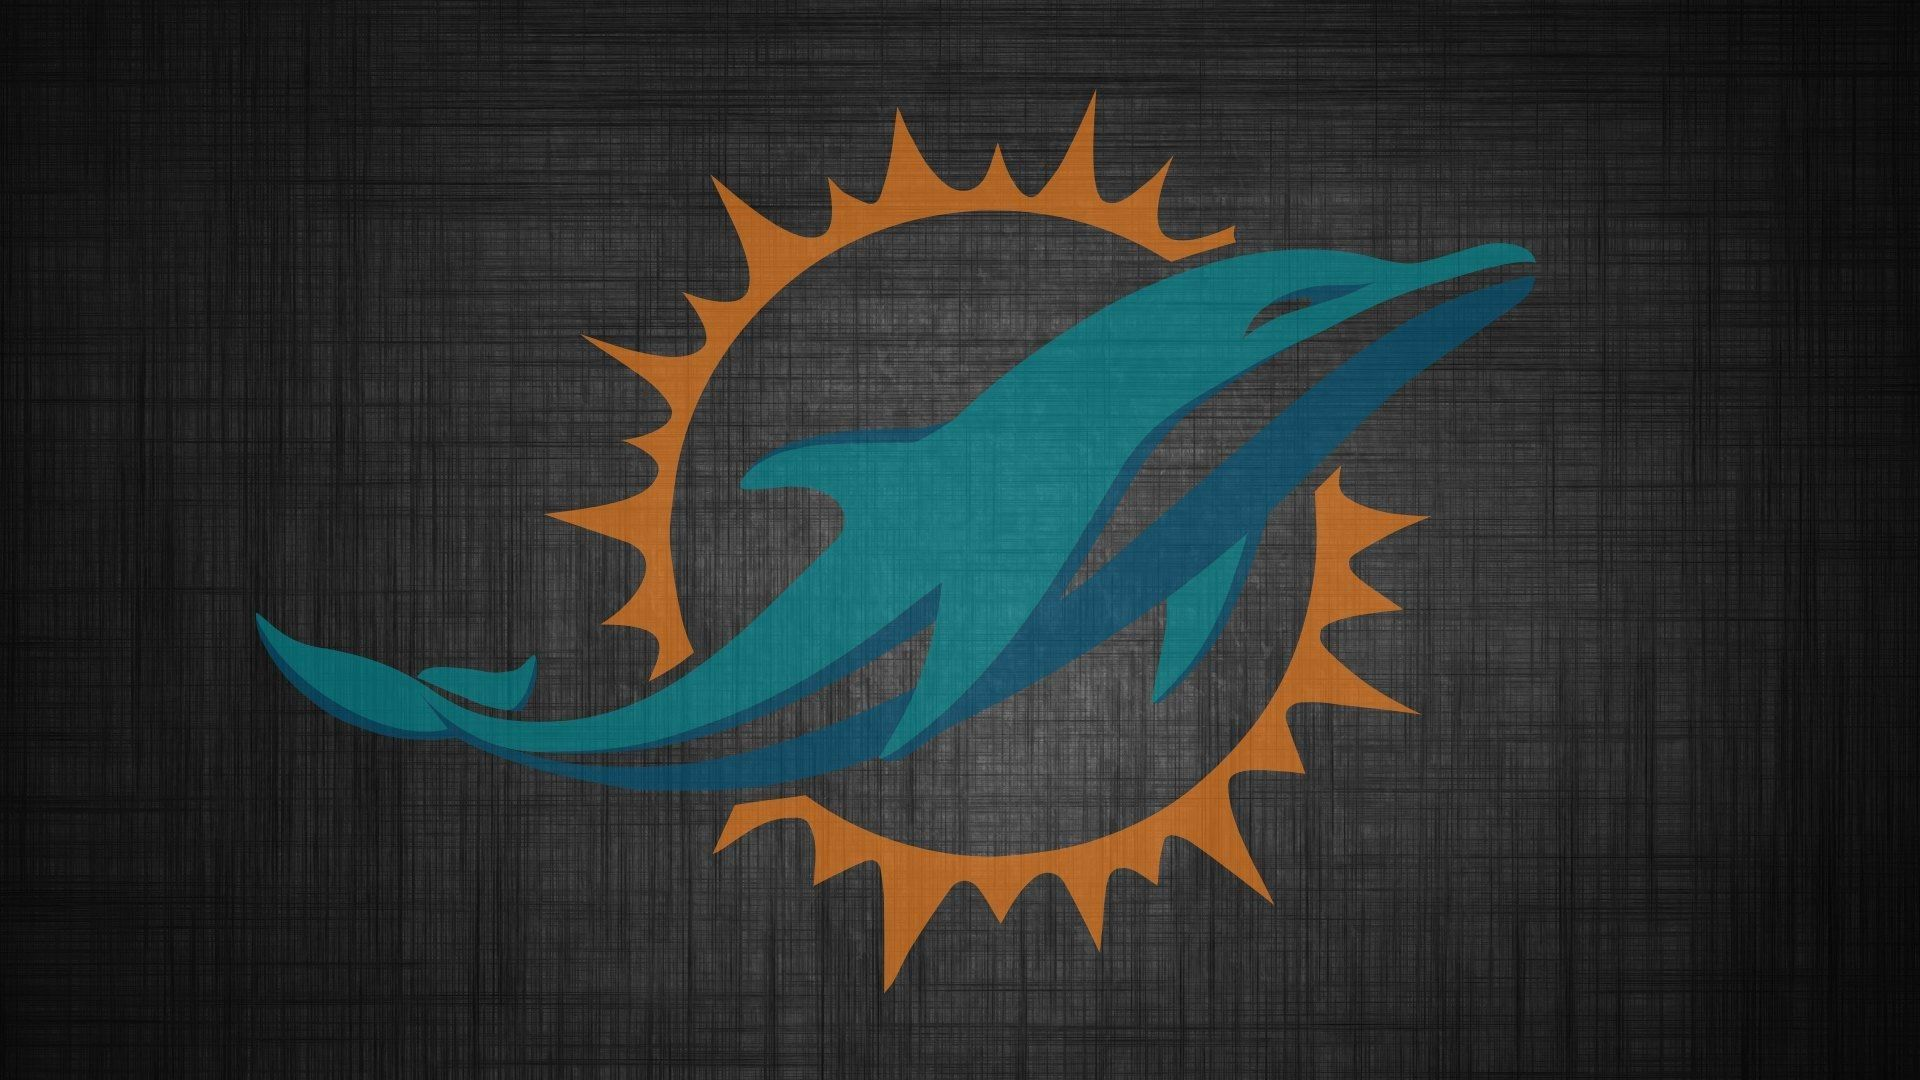 1920x1080 miami dolphins wallpaper android JPG 407 kB